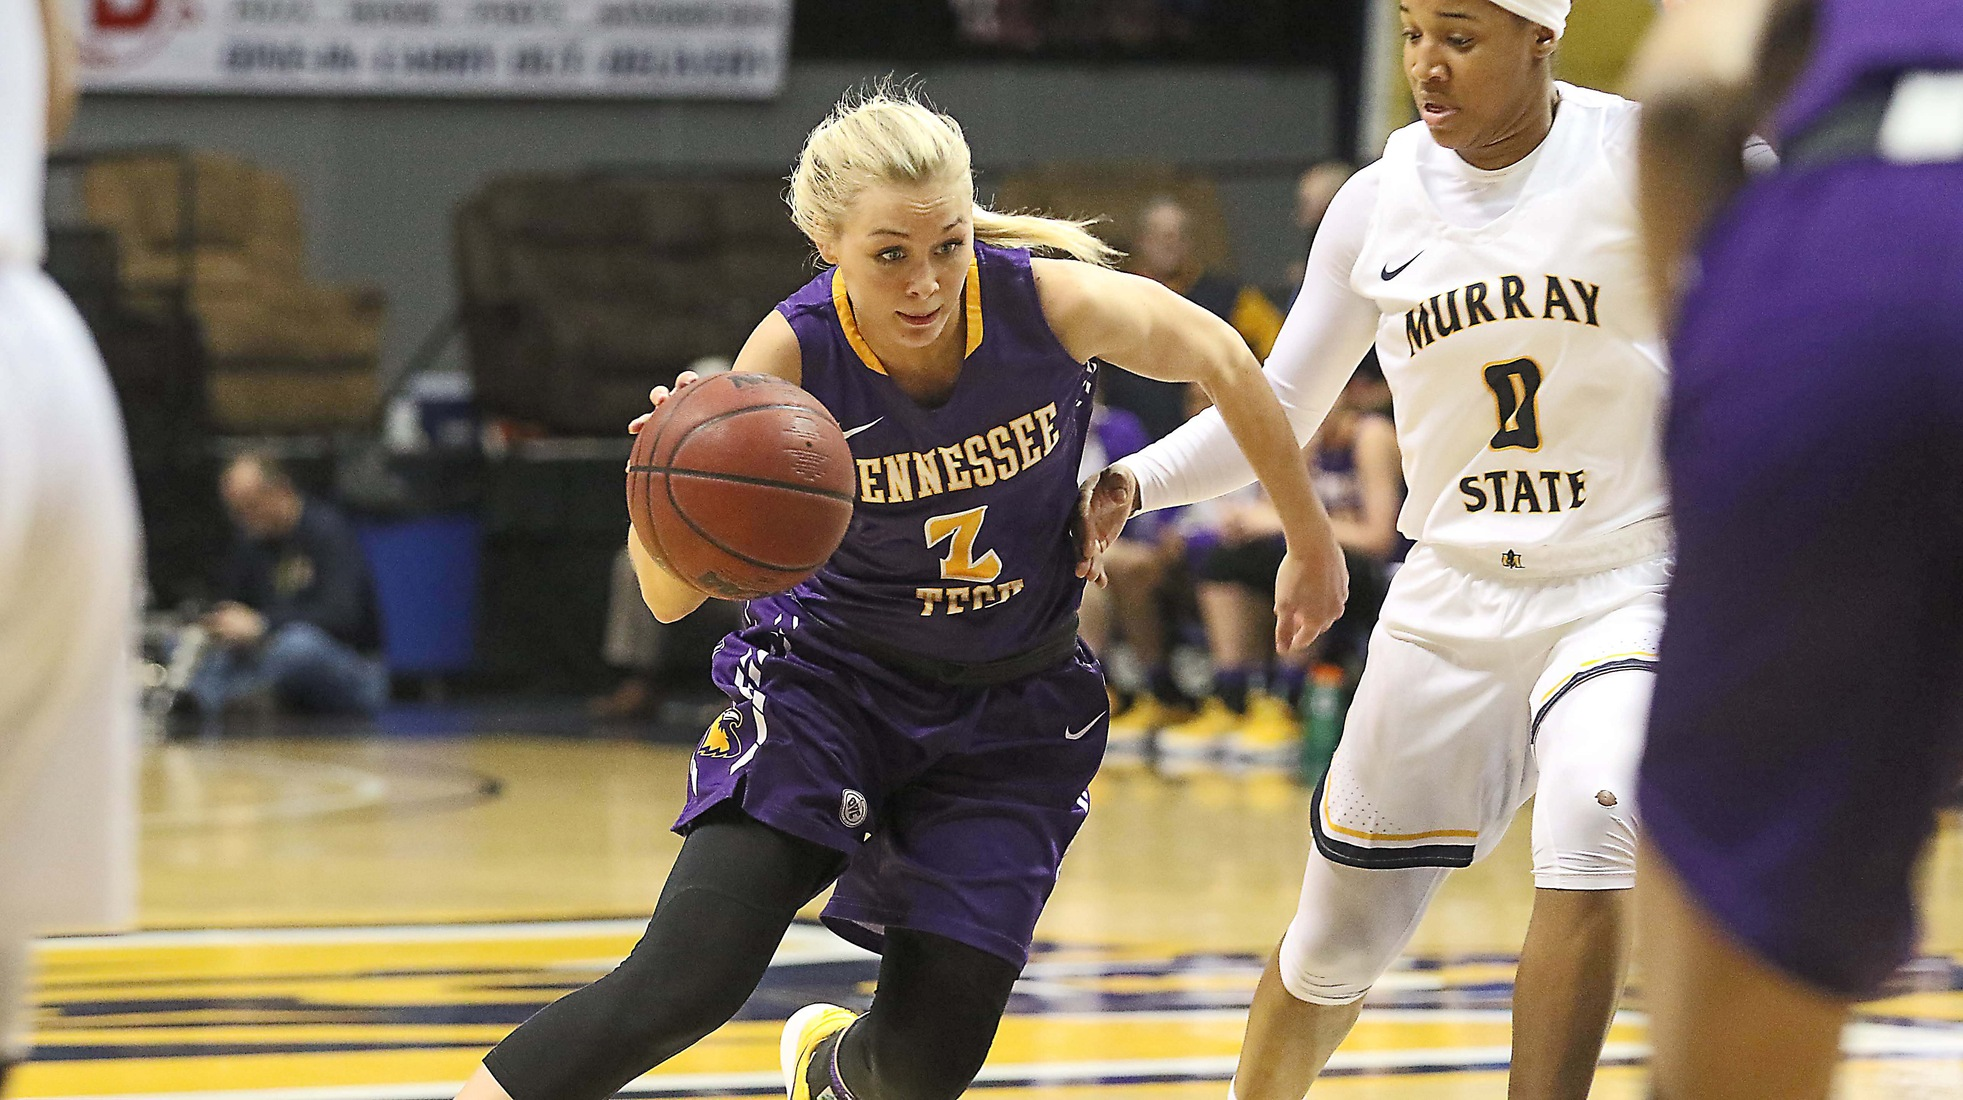 Tech out-shone offensively at Murray State